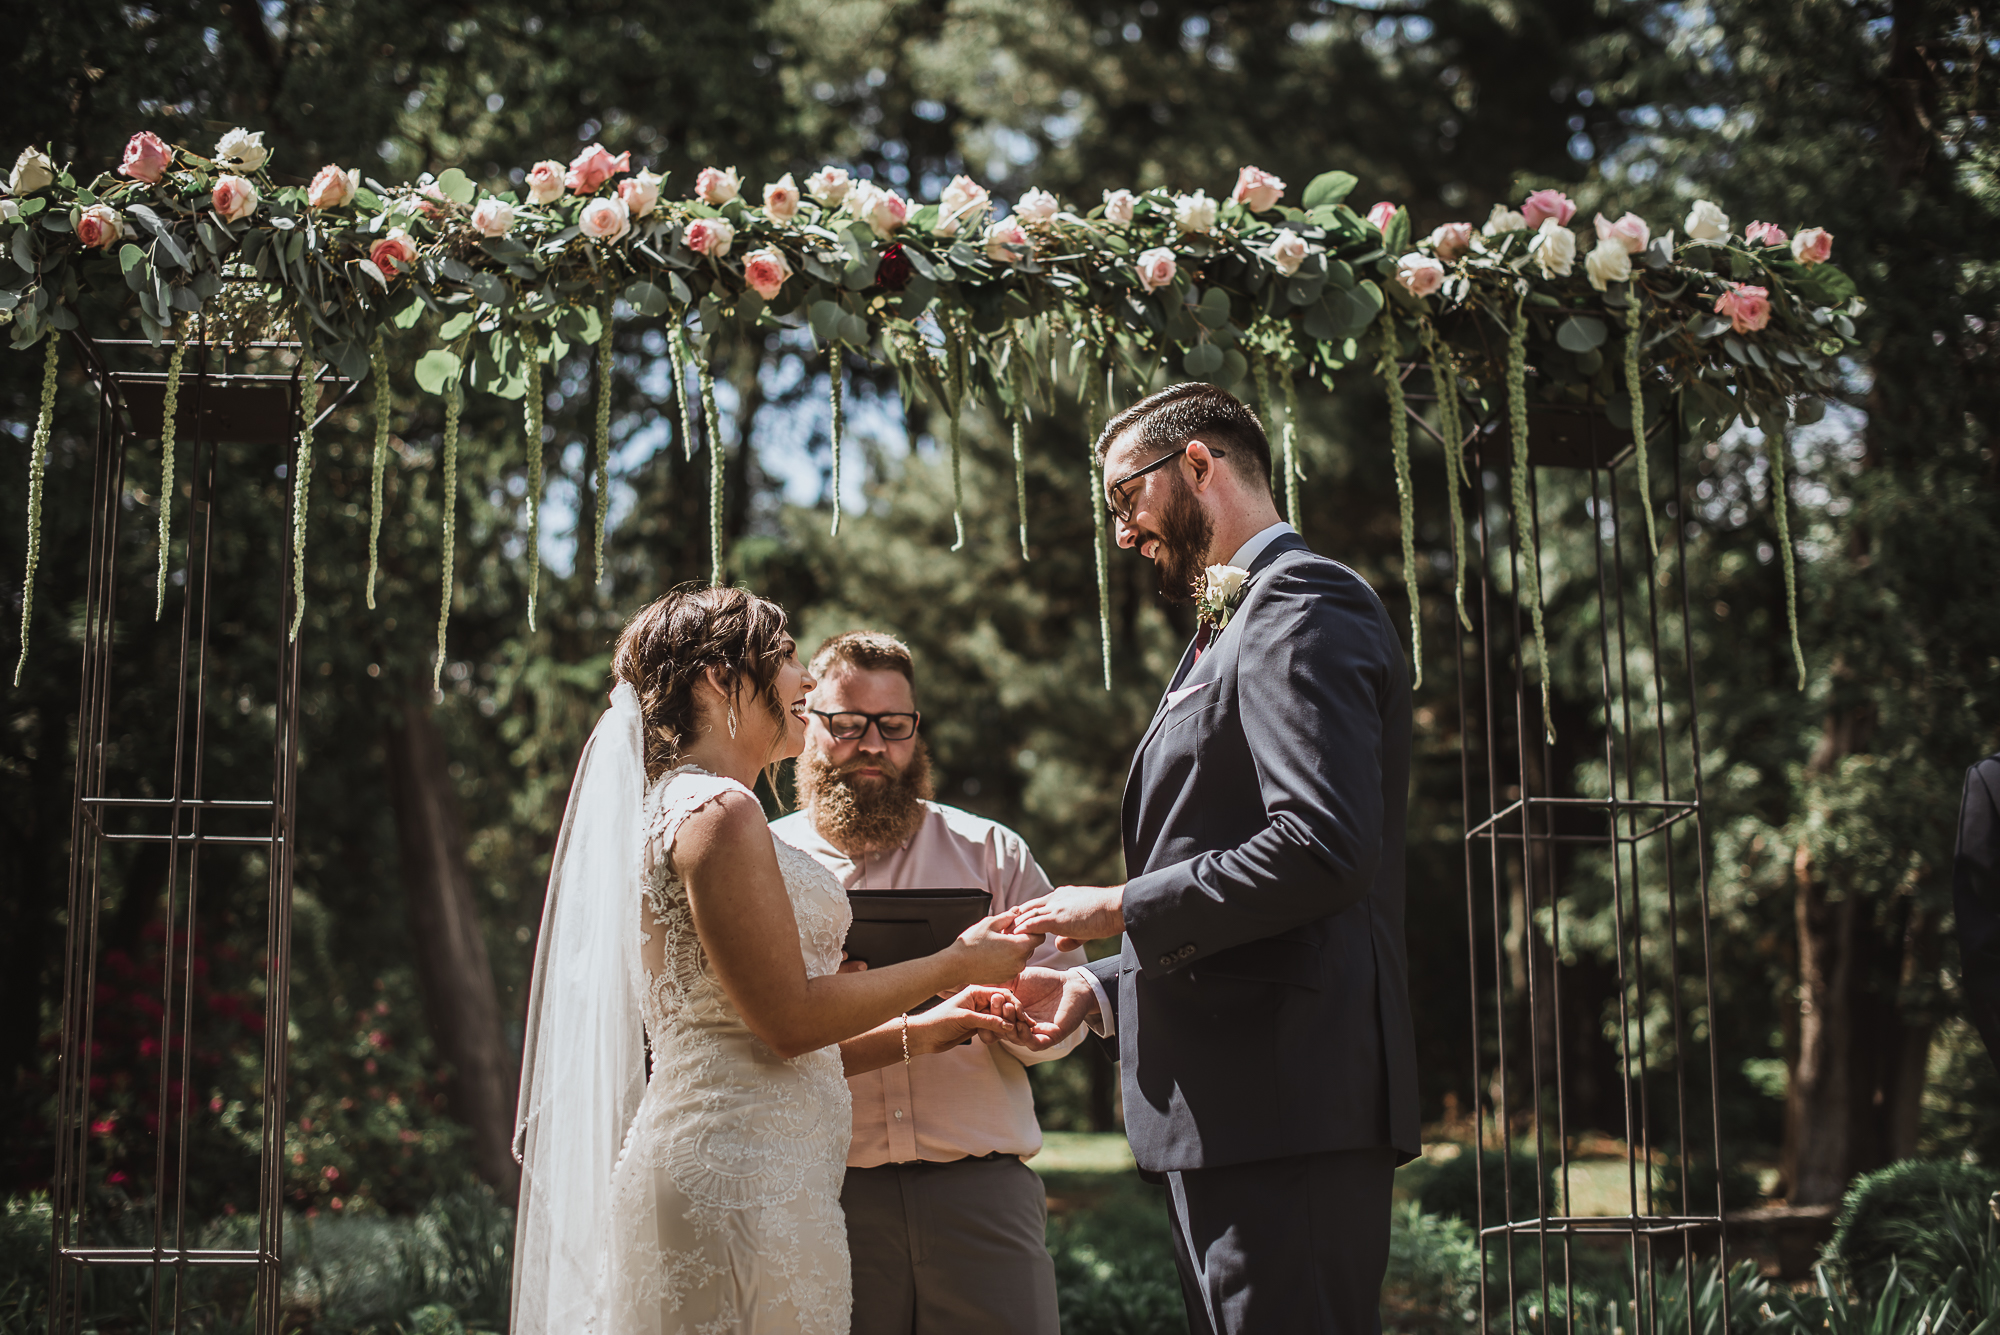 Melissa Cervantes Photography _ Kelsey + Ben Junebug Weddings Submission-61.jpg